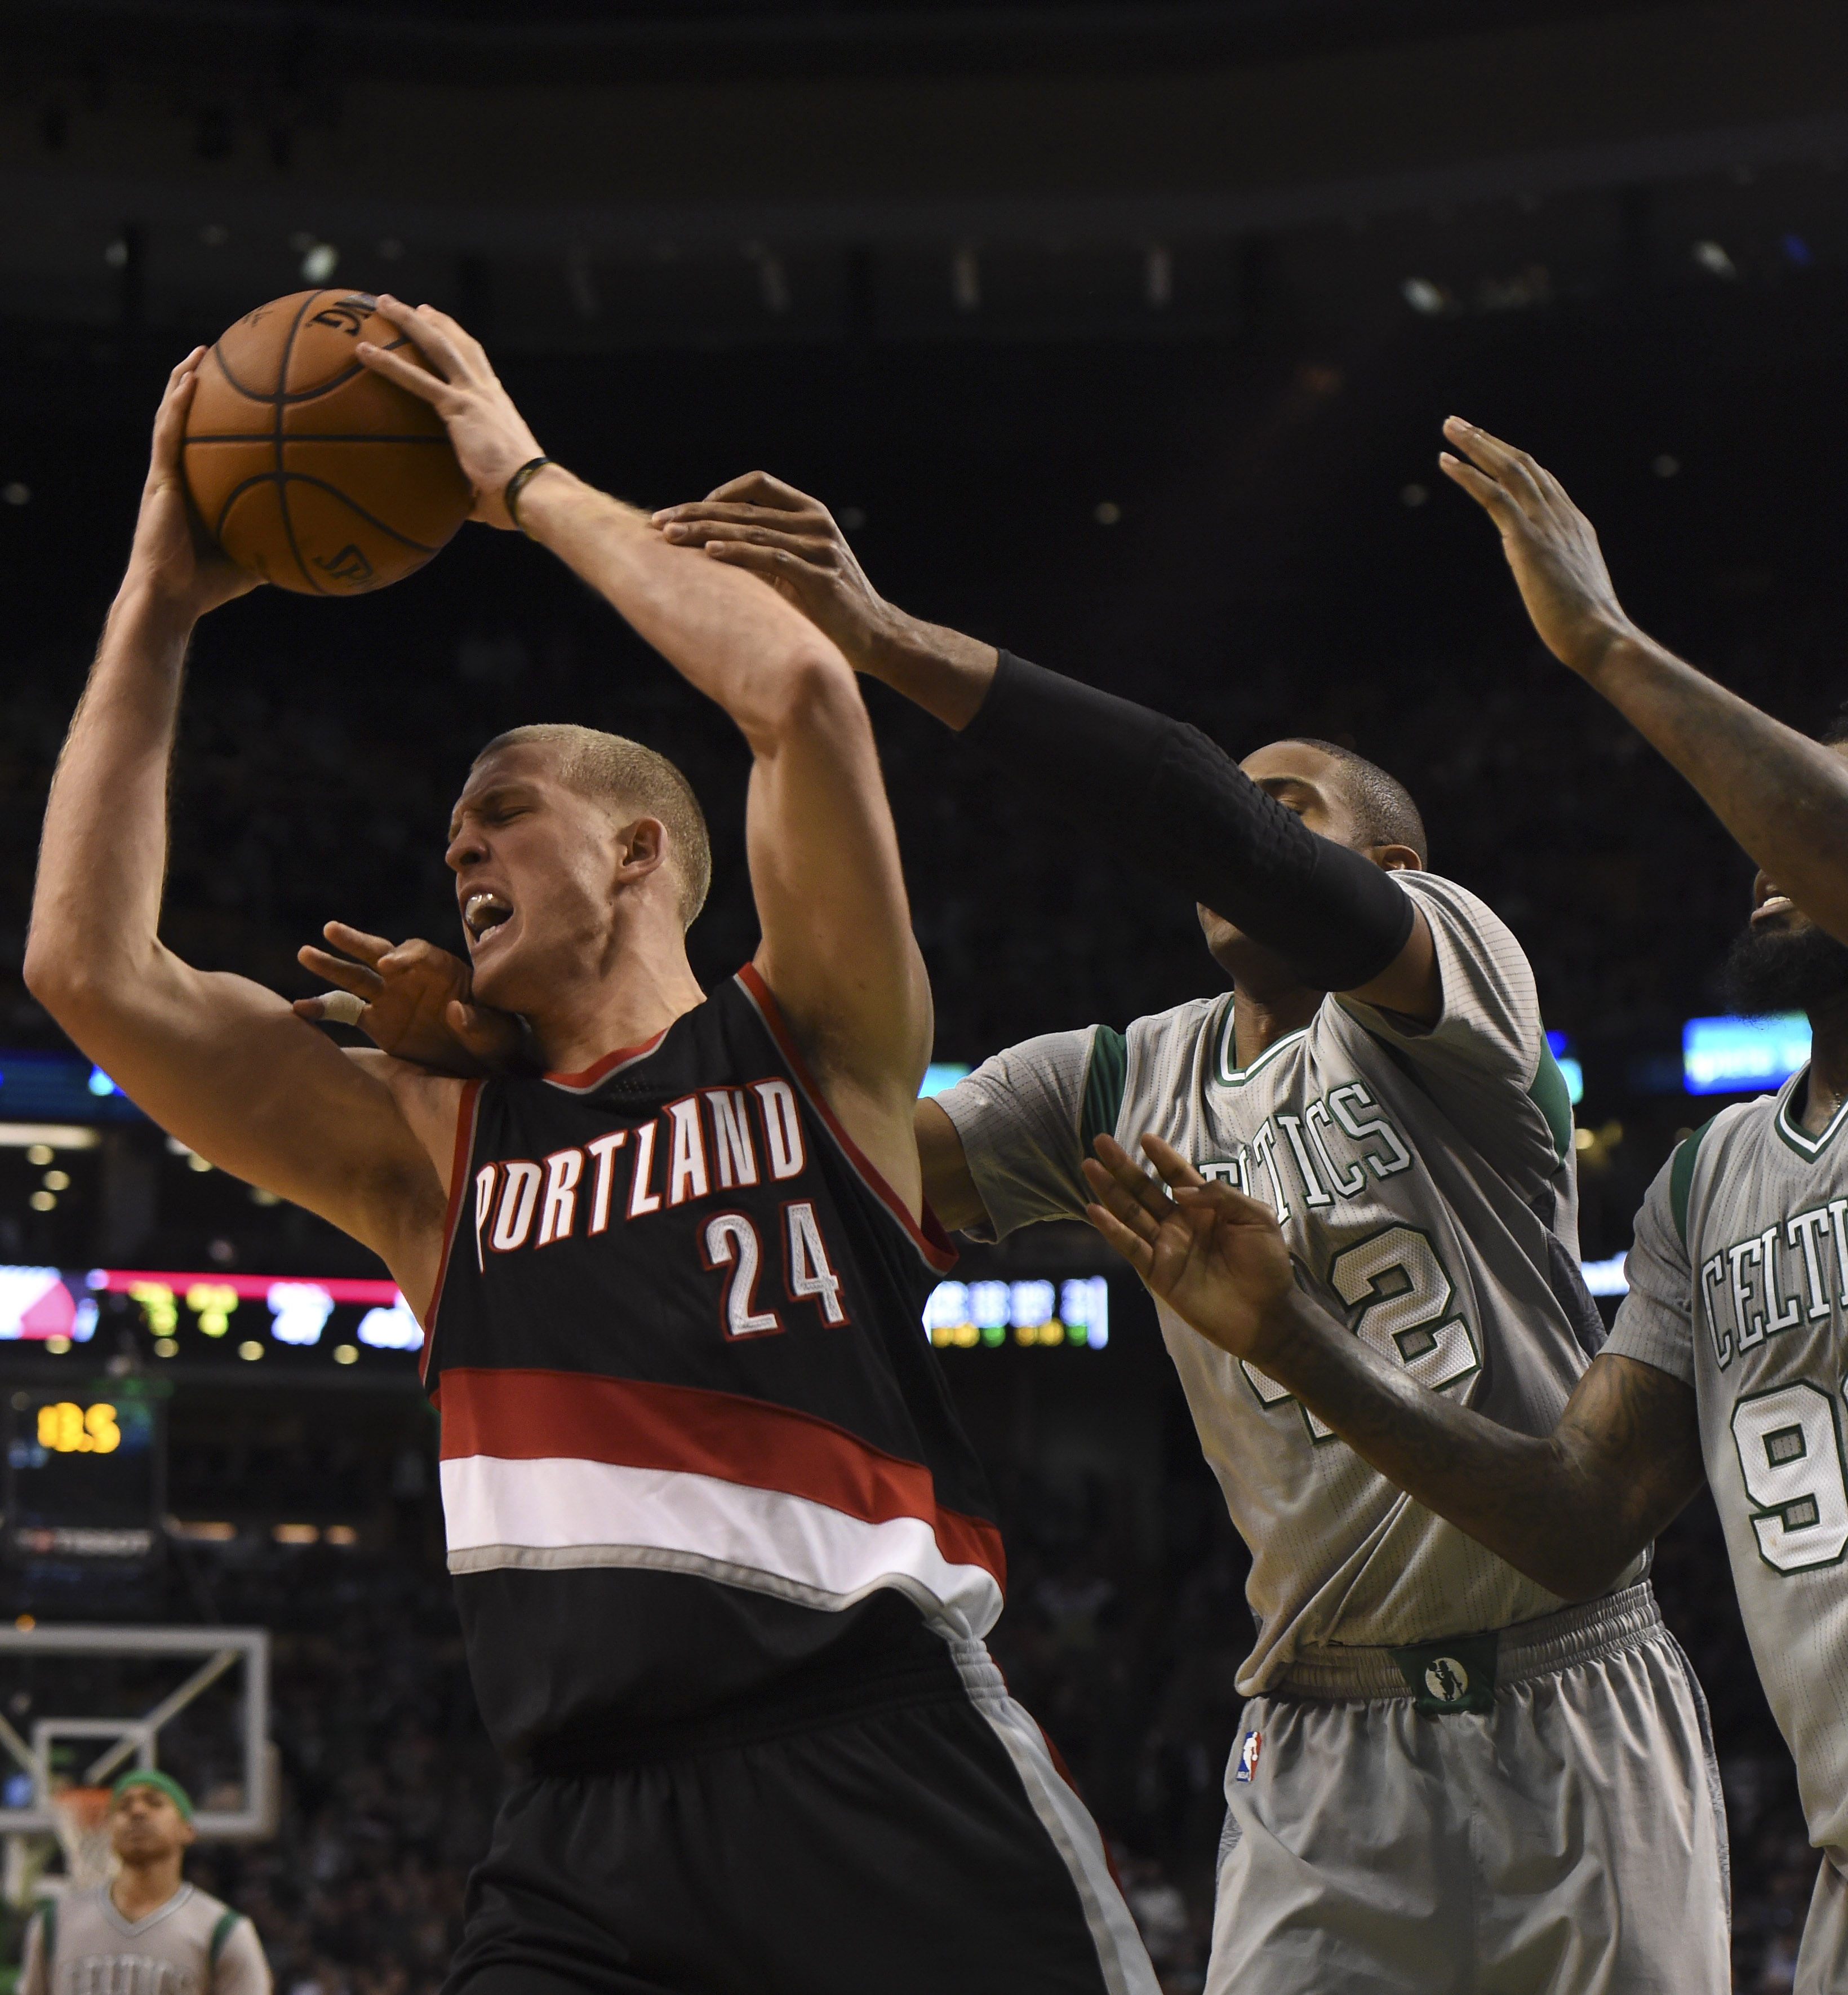 Portland Trail Blazers Roster: Can Blazers Pull Out Some Quality Wins Before All-Star Break?